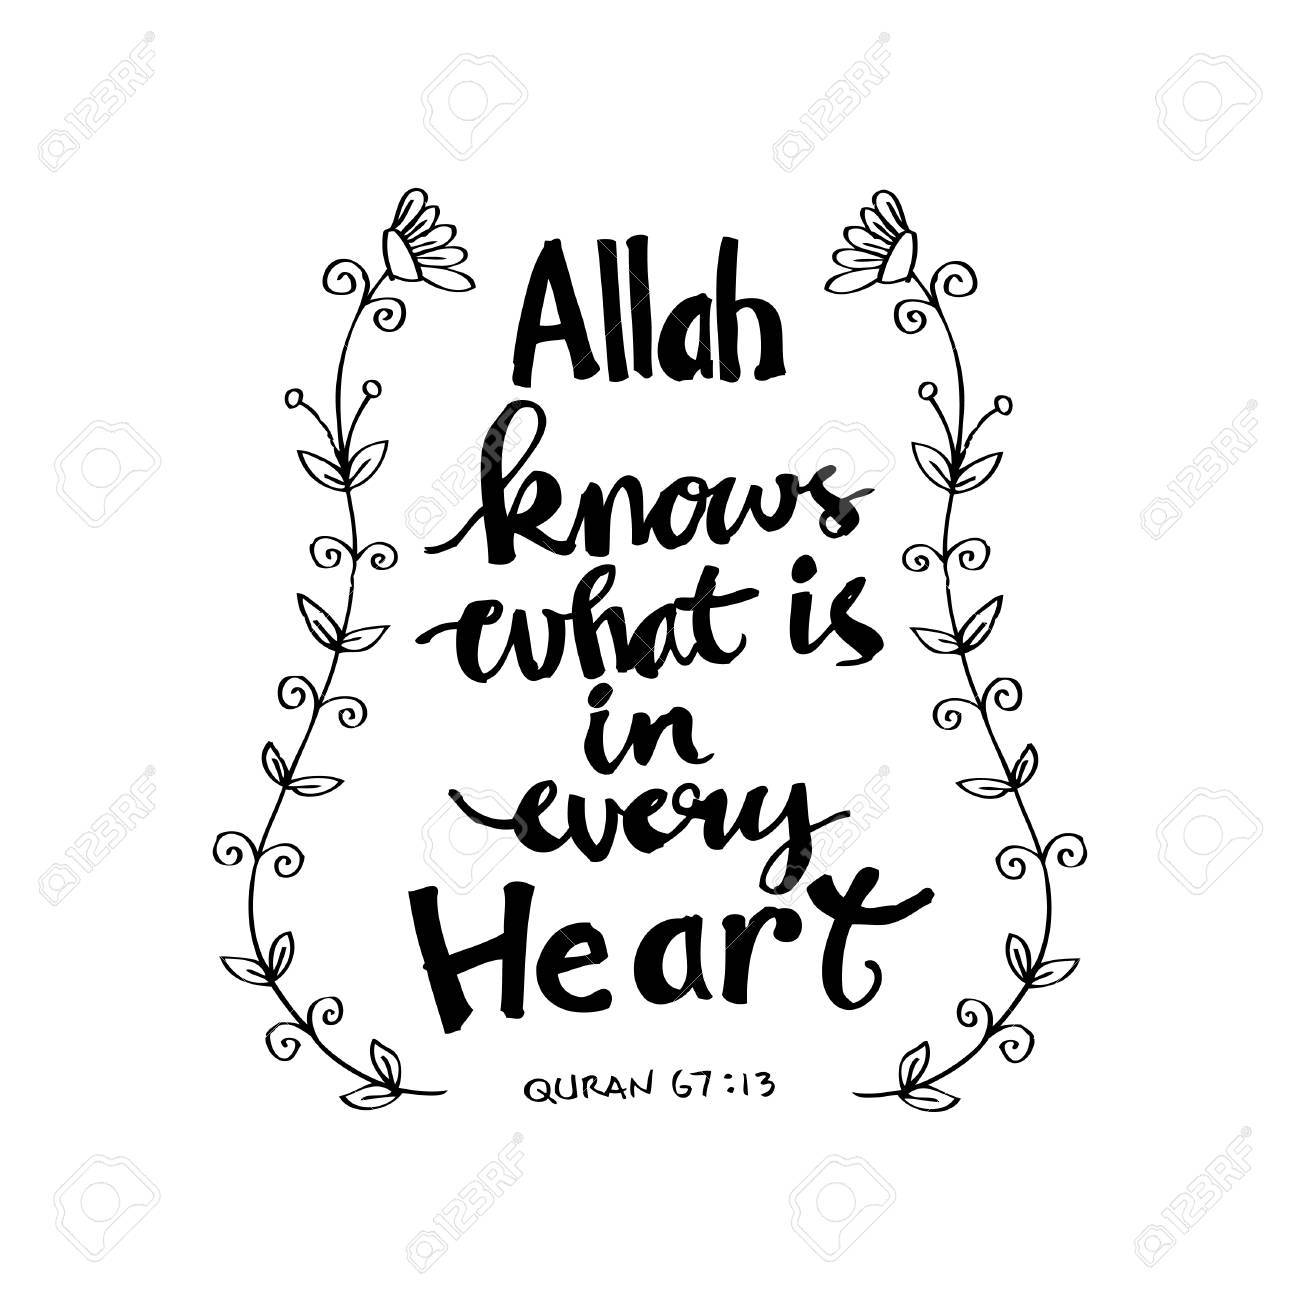 Allah Knows What Is In Every Heart Islamic Quran Quotes